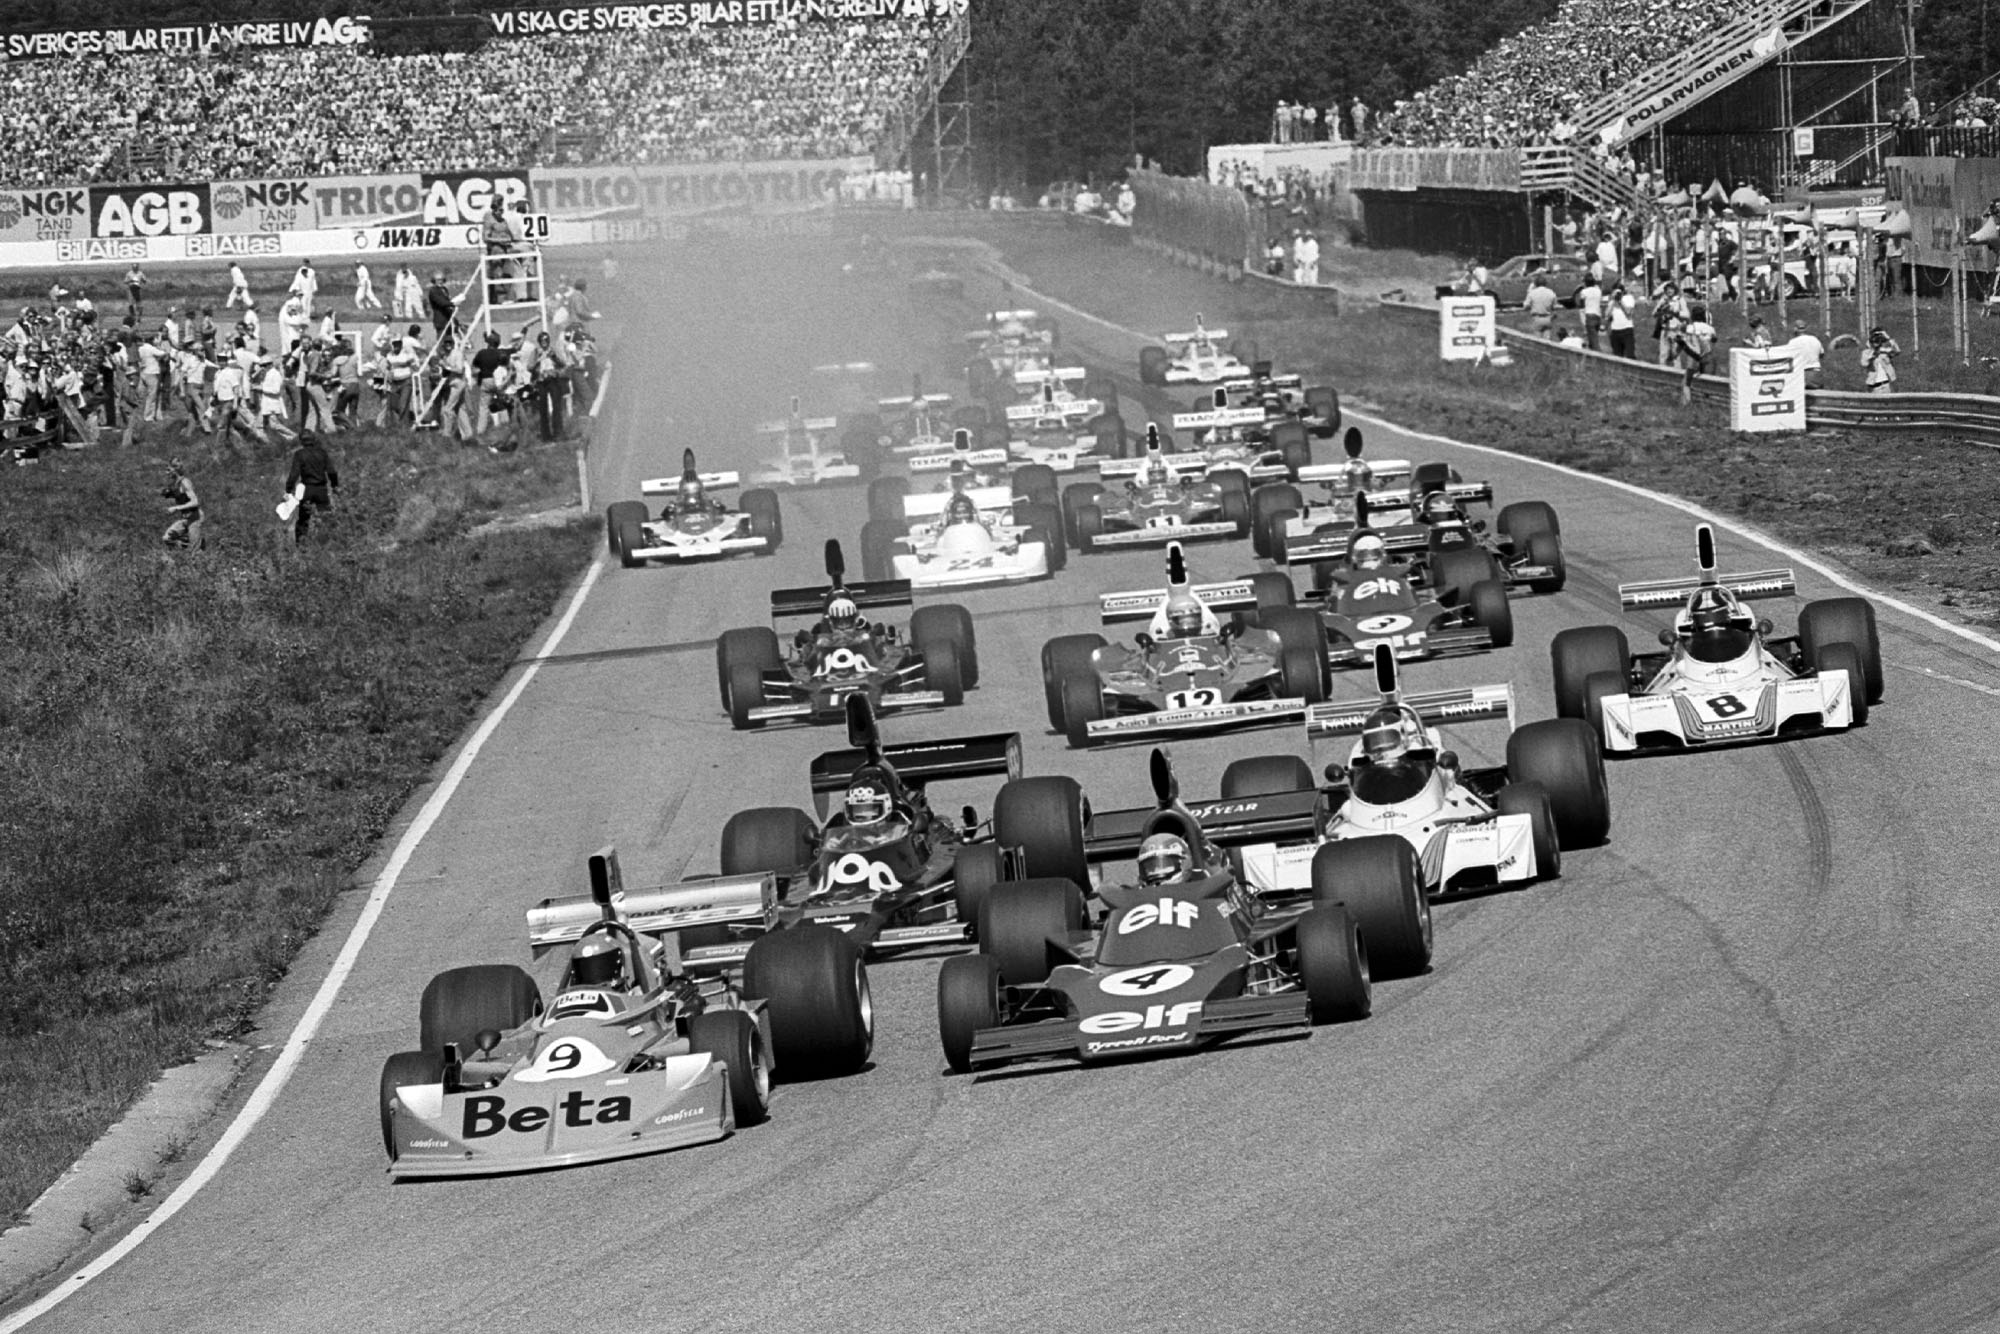 Vittorio Brambilla leads into the first corner of the 1975 Swedish Grand Prix, Anderstorp.